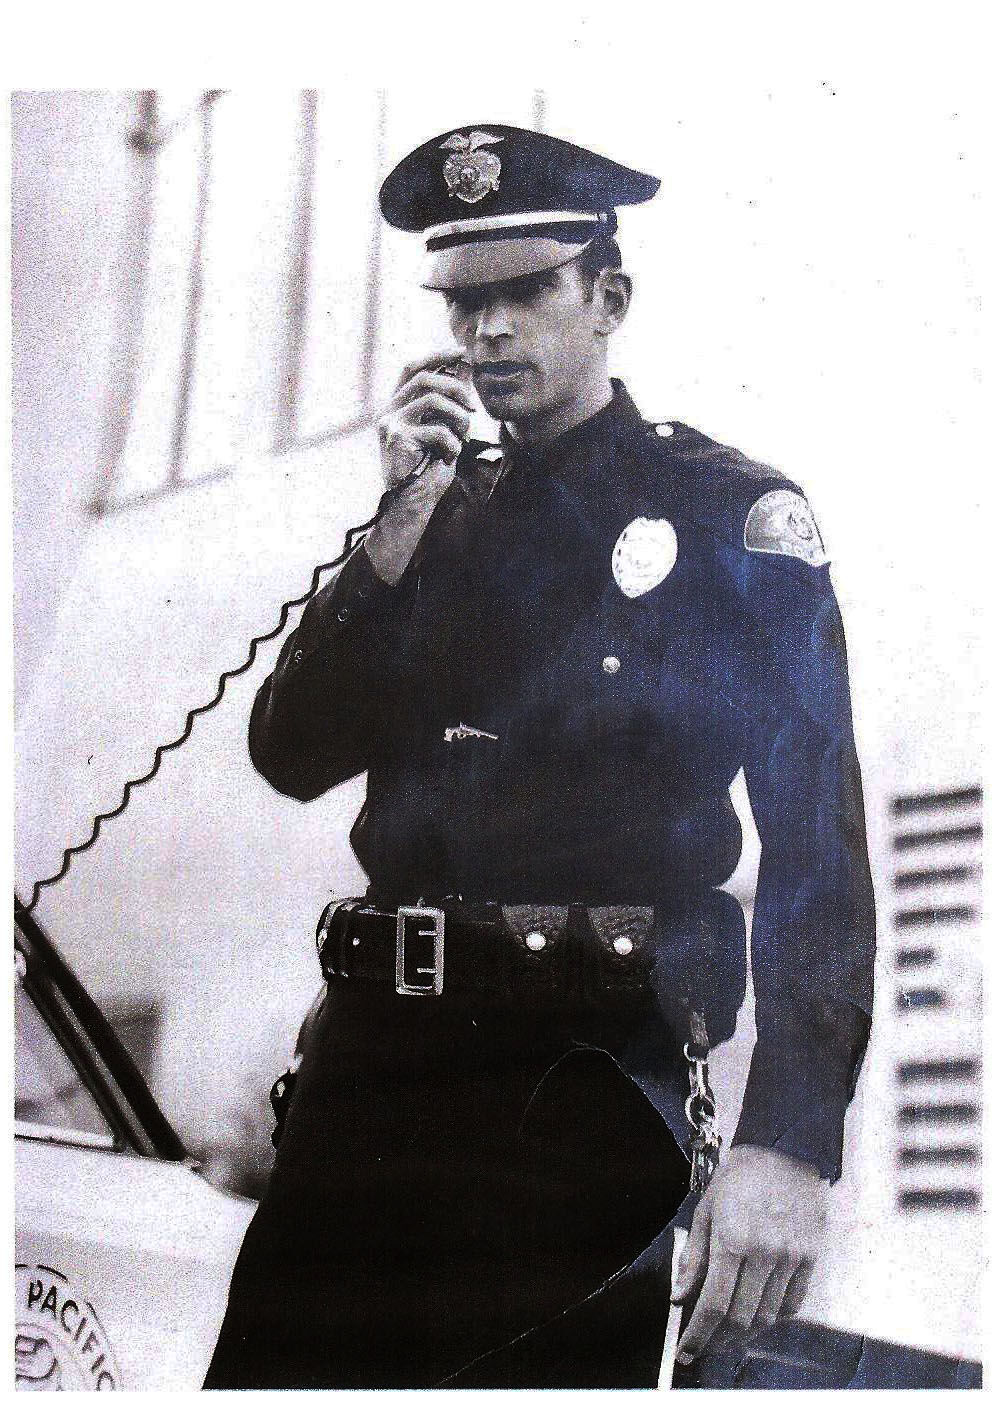 Pacifica-Police-Officer-Charles-Roberts-copy